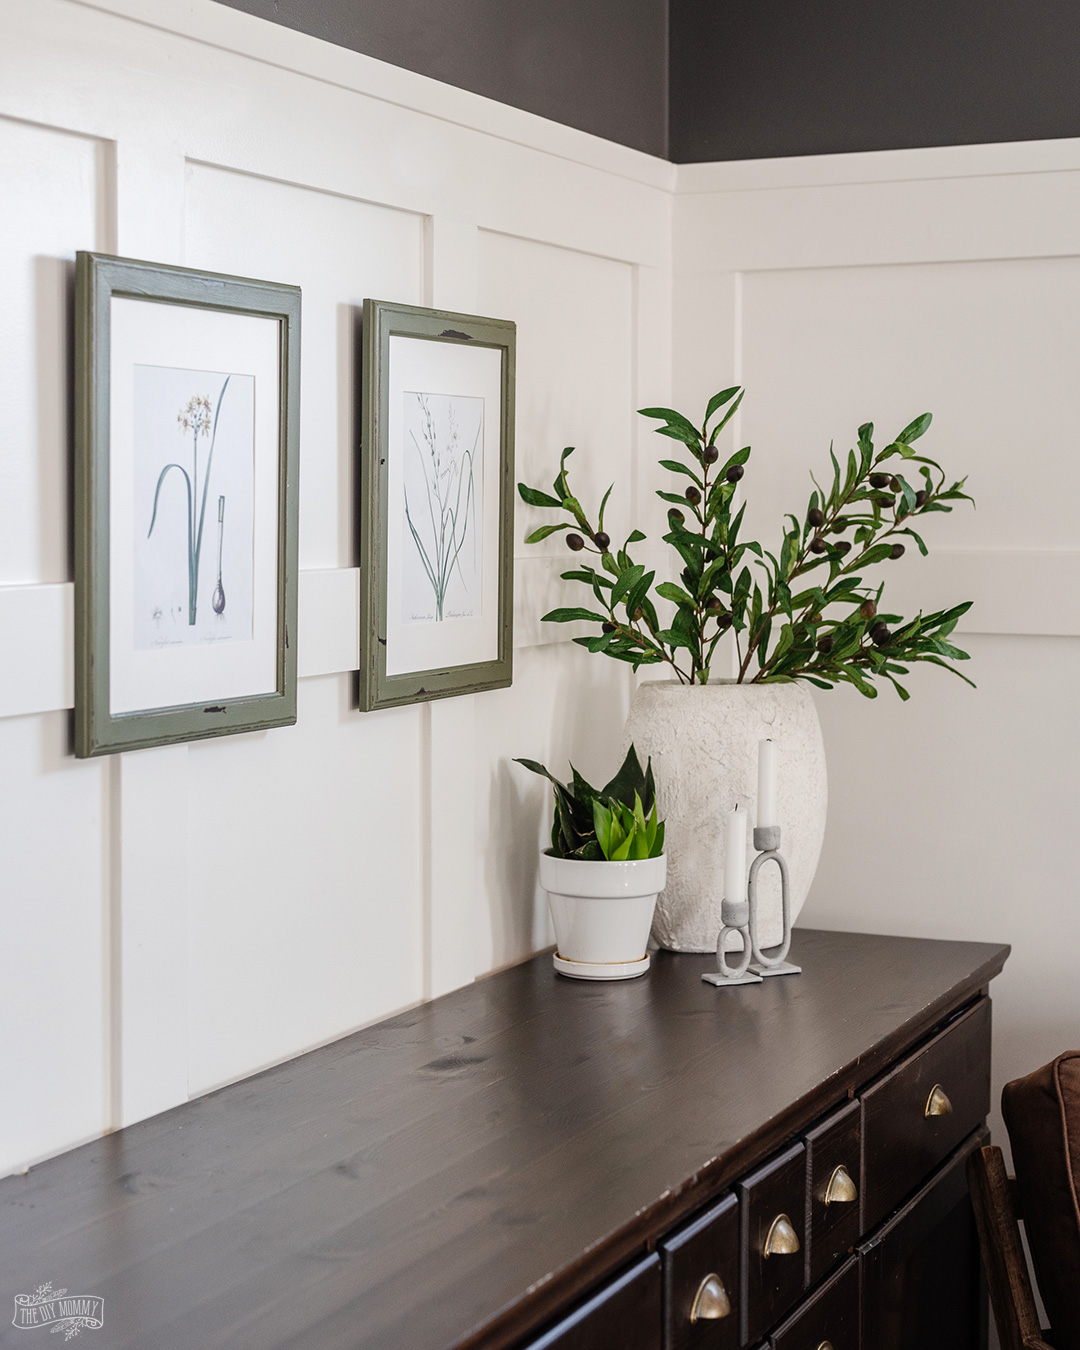 Learn how to find FREE vintage botanical art to print at home. This is a fantastic, budget-friendly wall art solution!